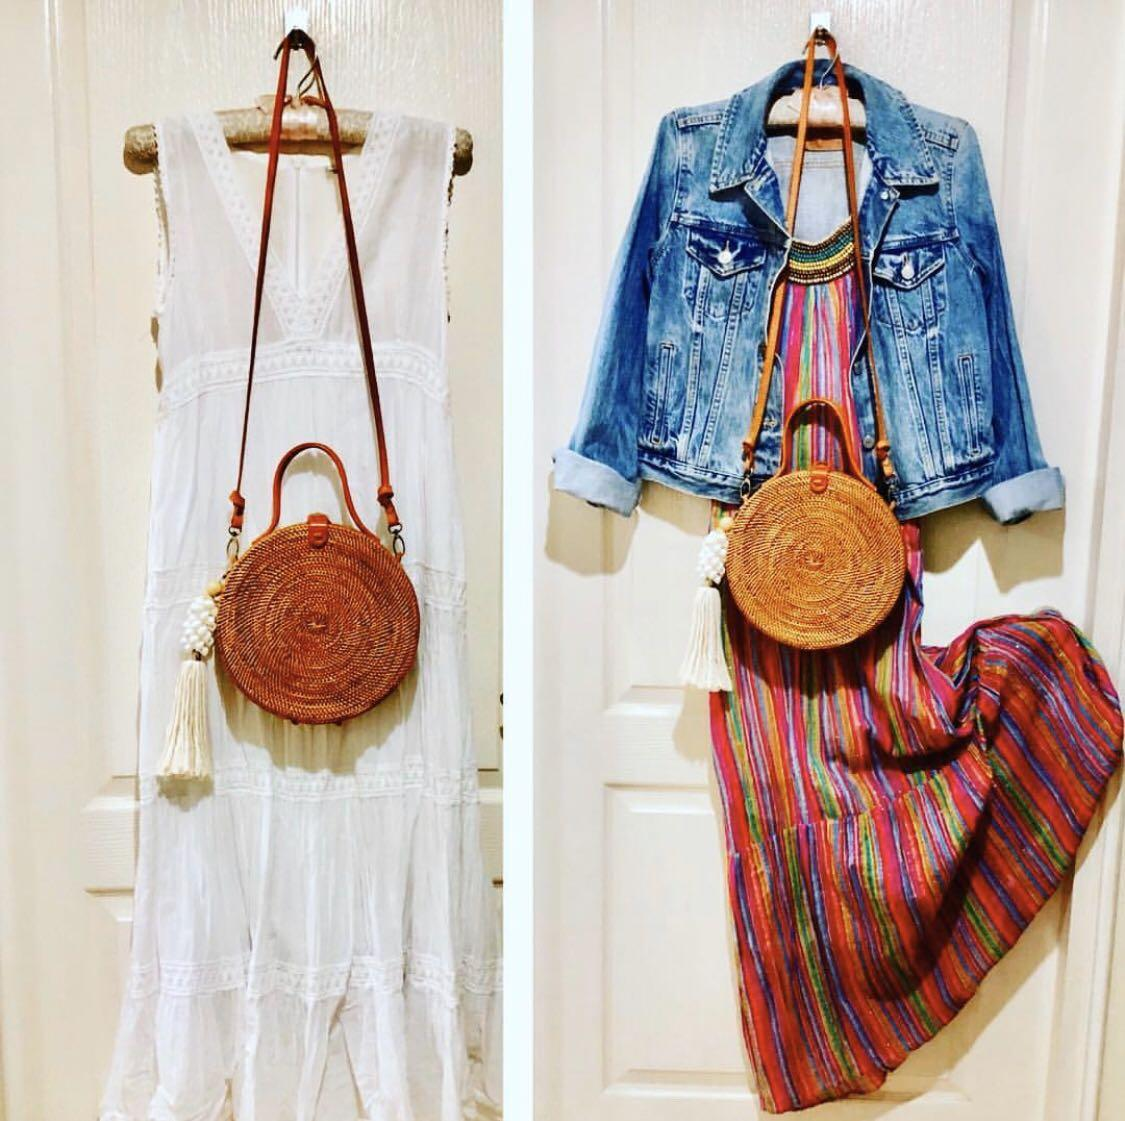 Bali Round Rattan Crossbody with Leather Strap & lined with Batik! (Black & Tan)